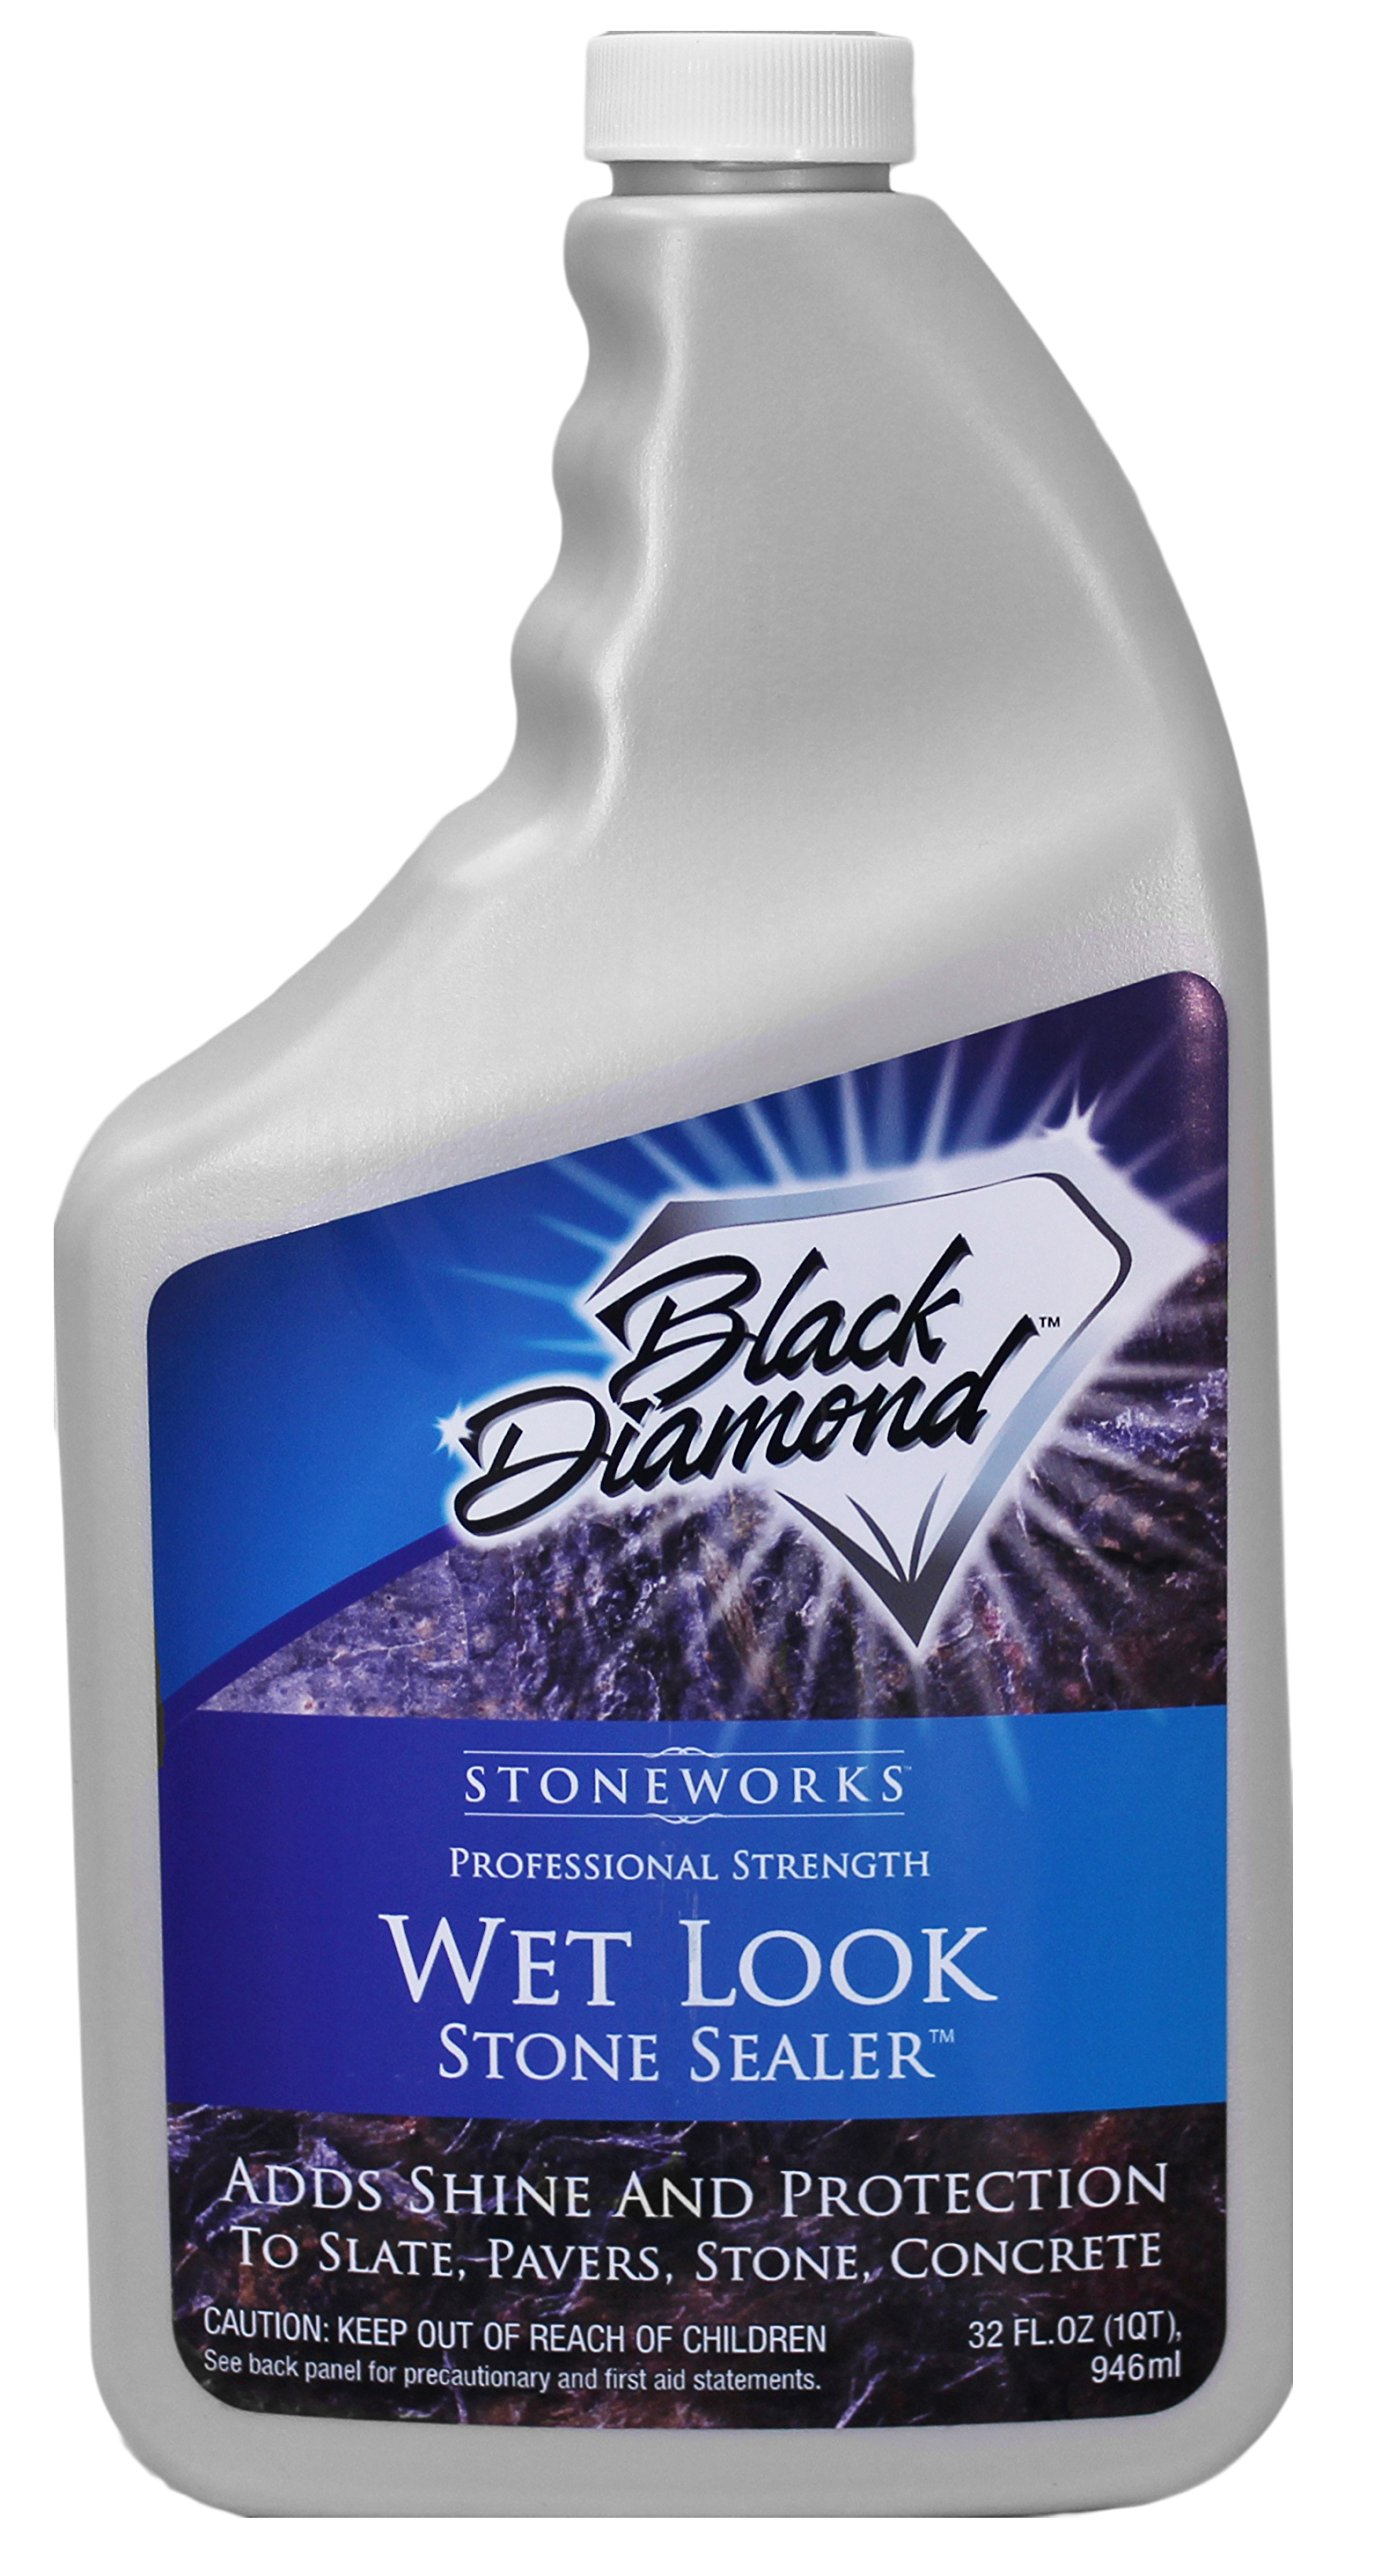 Black Diamond Stoneworks Wet Look Natural Stone Sealer Provides Durable Gloss and Protection to: Slate, Concrete, Brick, Sandstone, Driveways, Garage Floors. Interior or Exterior. 1 QT